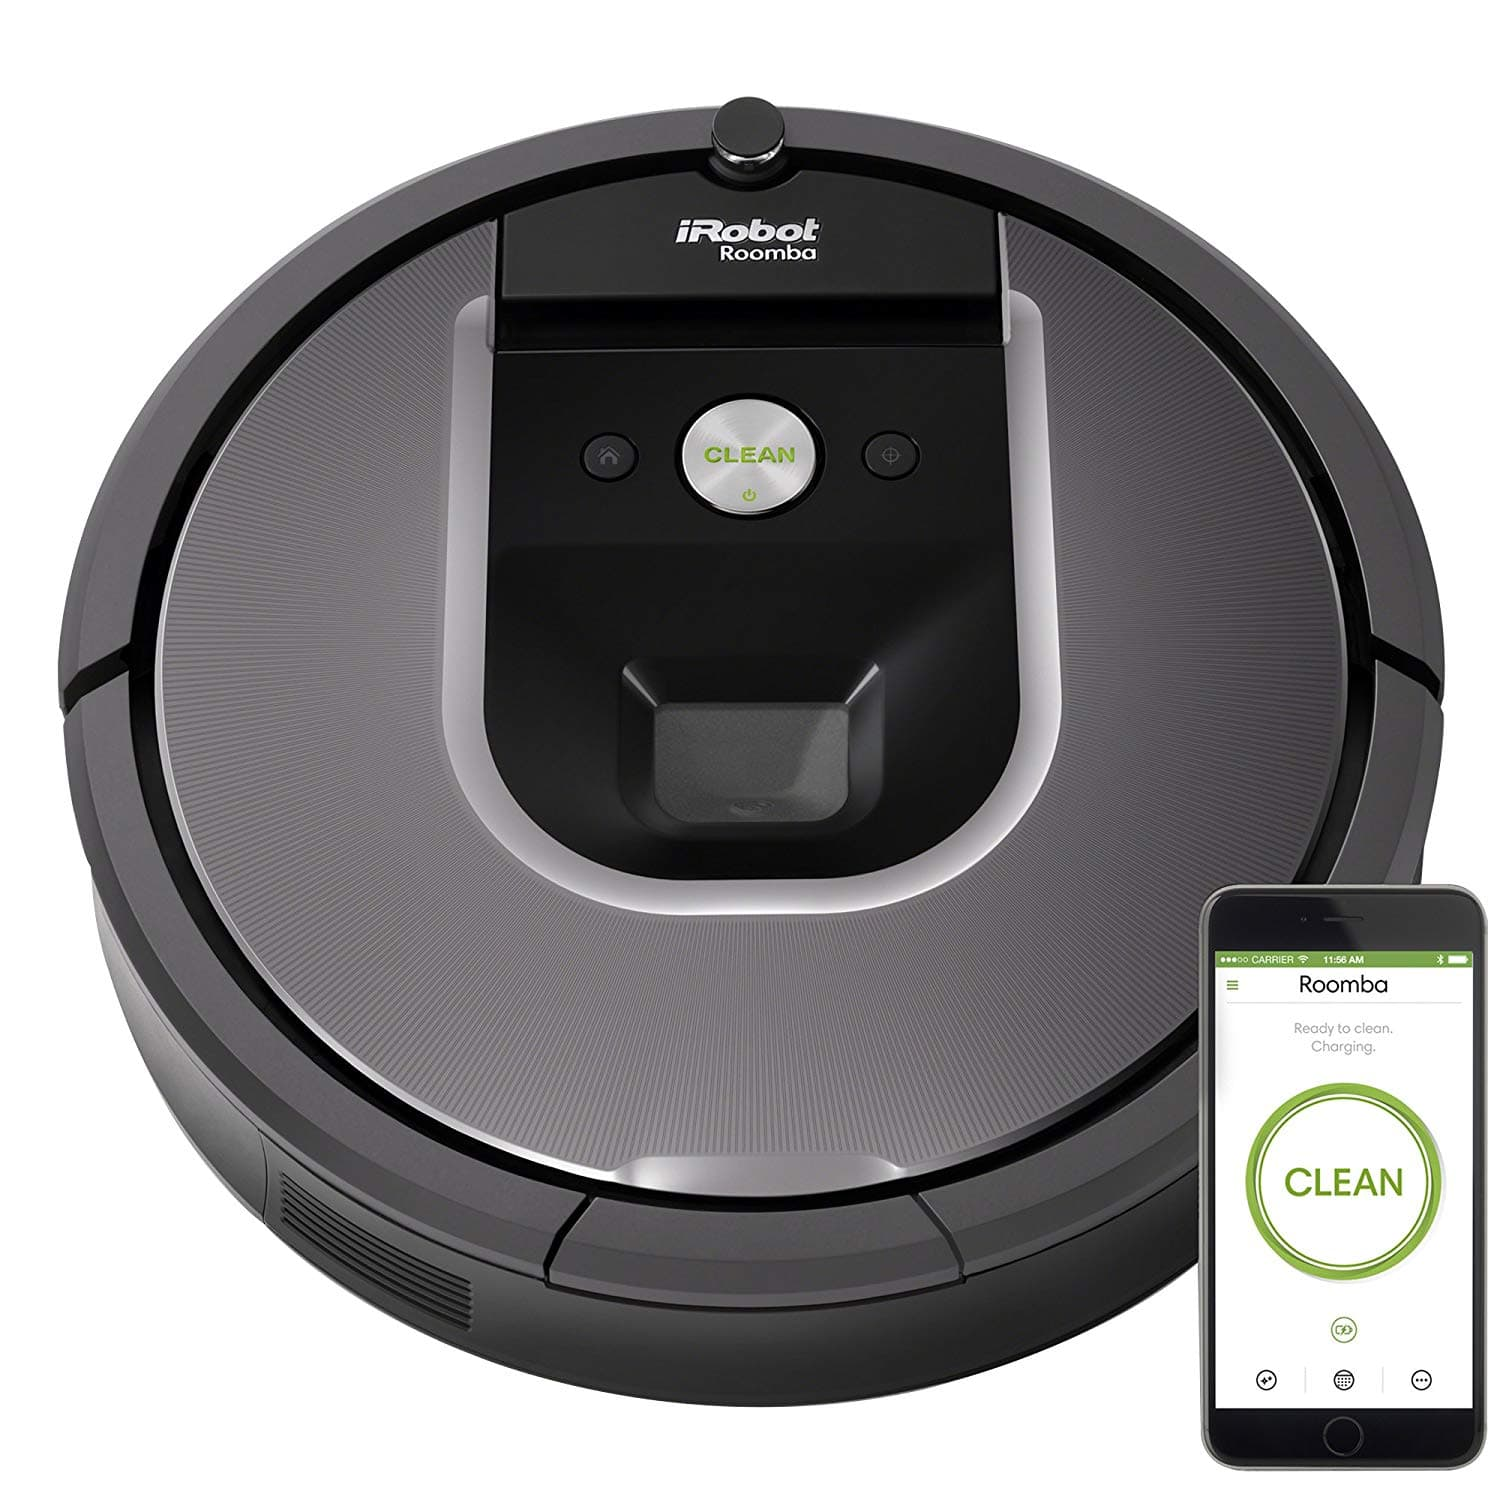 iRobot Roomba 960 Robot Vacuum- Wi-Fi Connected Mapping, Works with Alexa, Ideal for Pet Hair, Carpets, Hard Floors [Roomba 960] $400